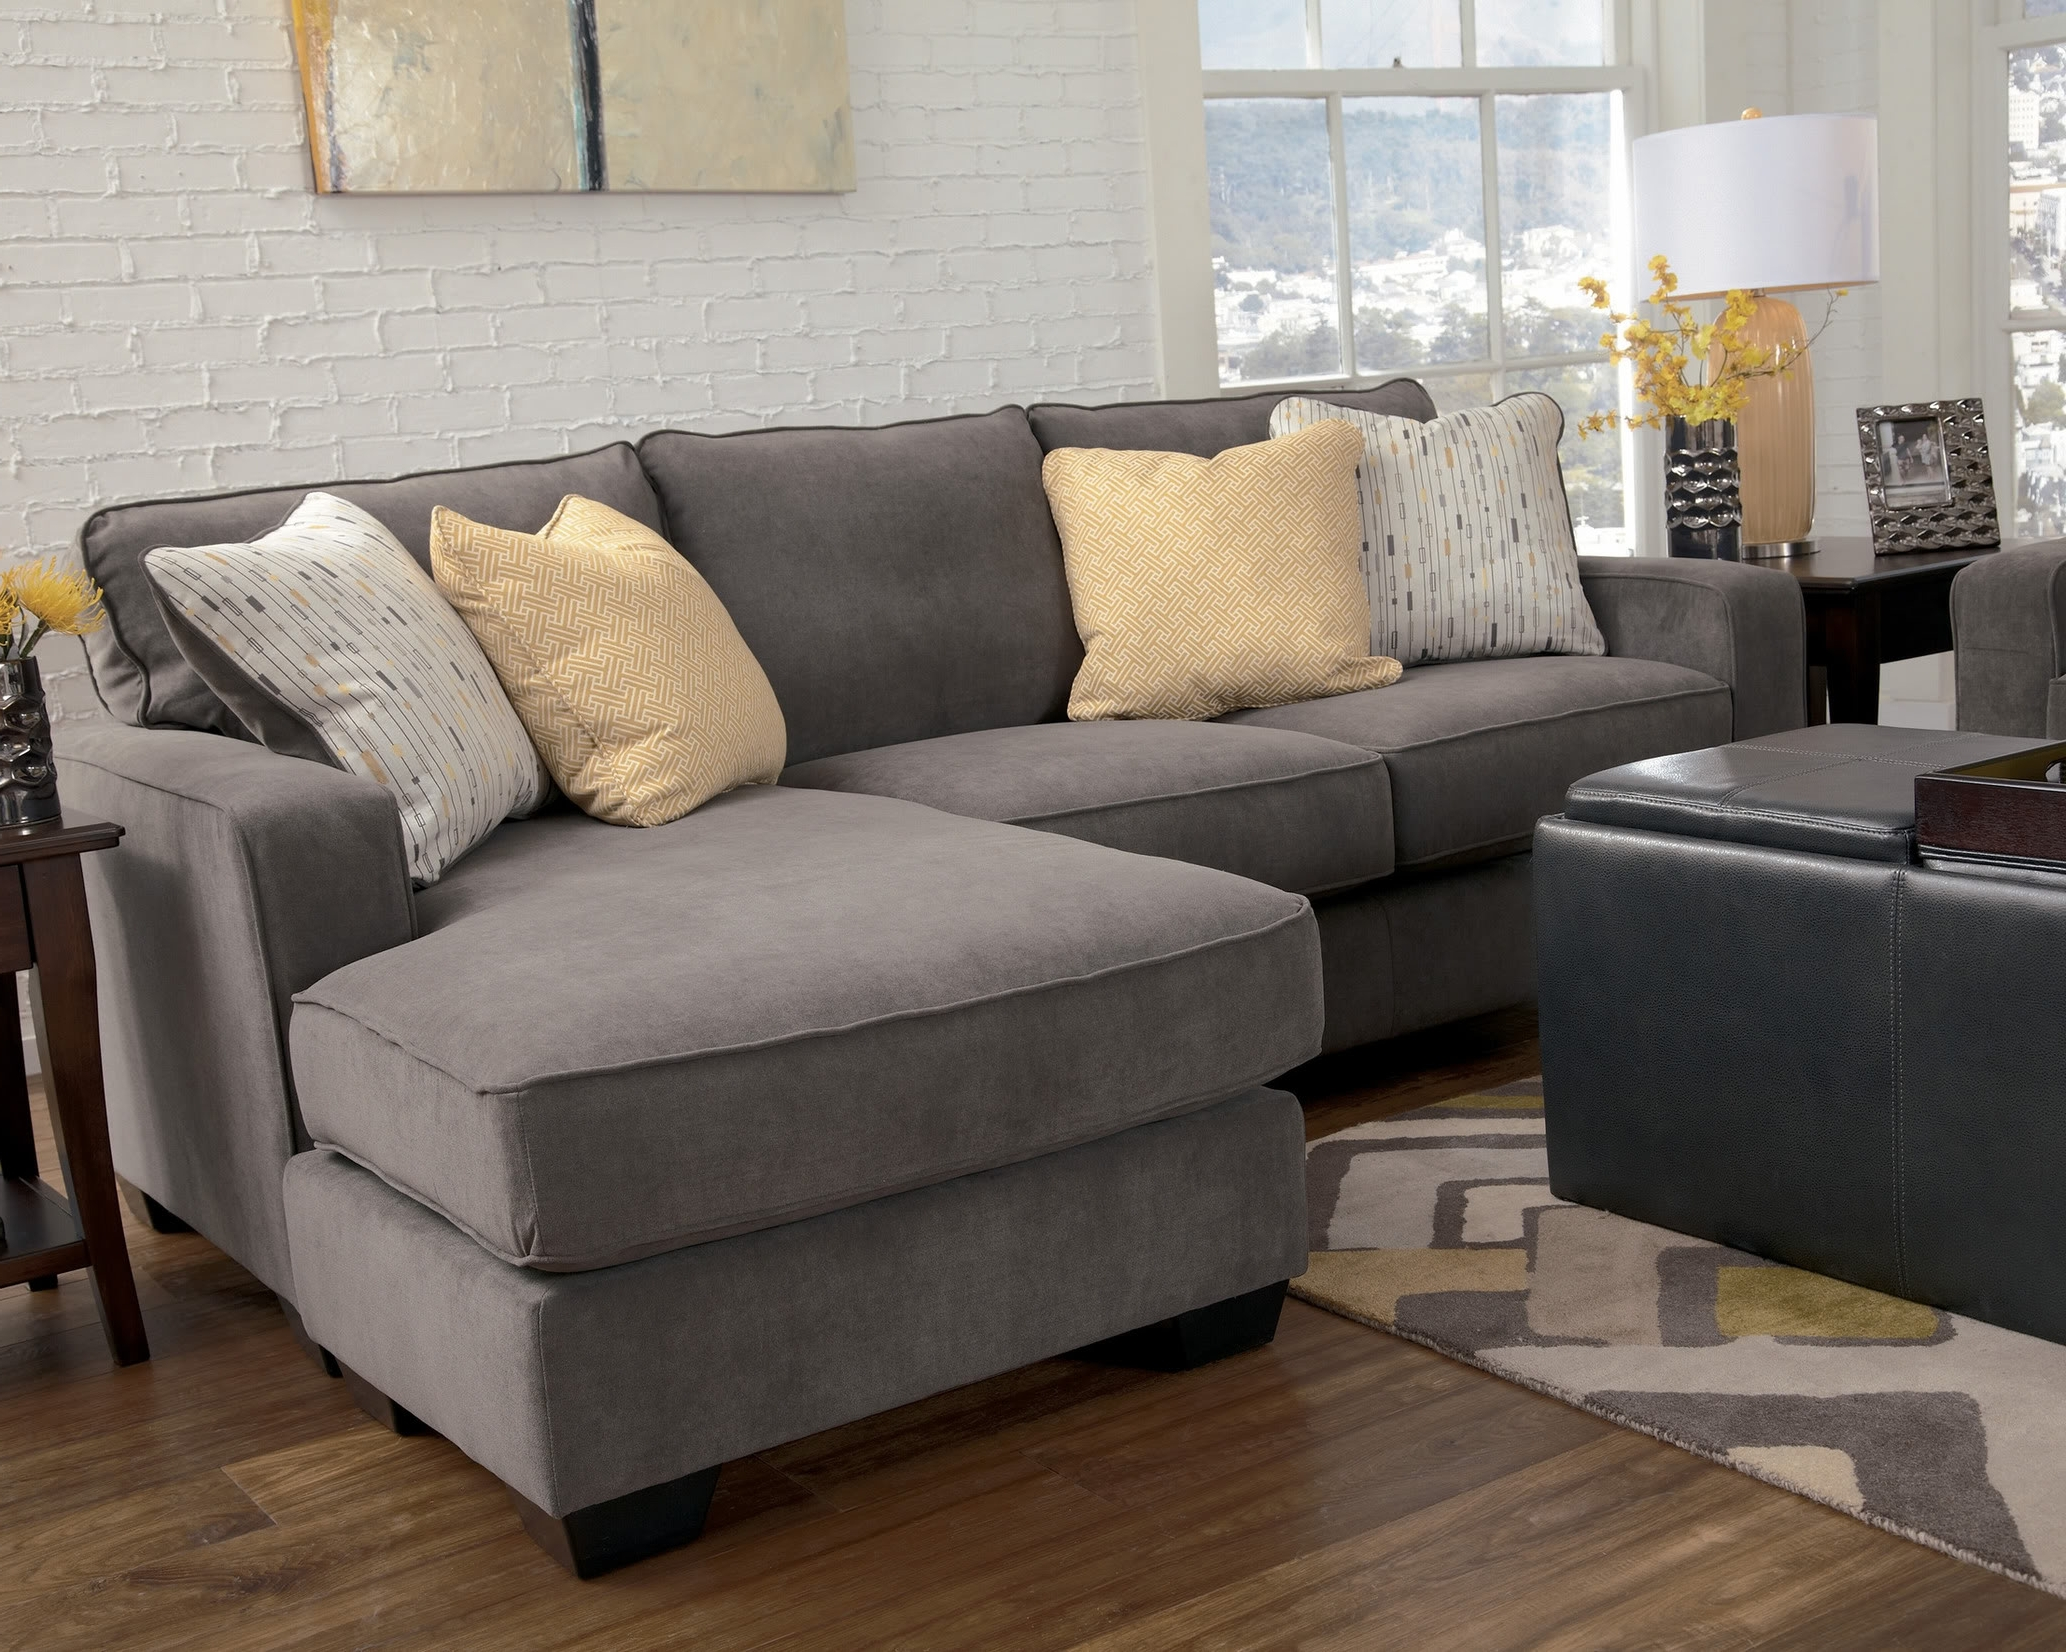 Well Known Grey Sofas With Chaise With Regard To Marble Contemporary Sofa Chaise Living Room Furniture Fabric (View 14 of 15)